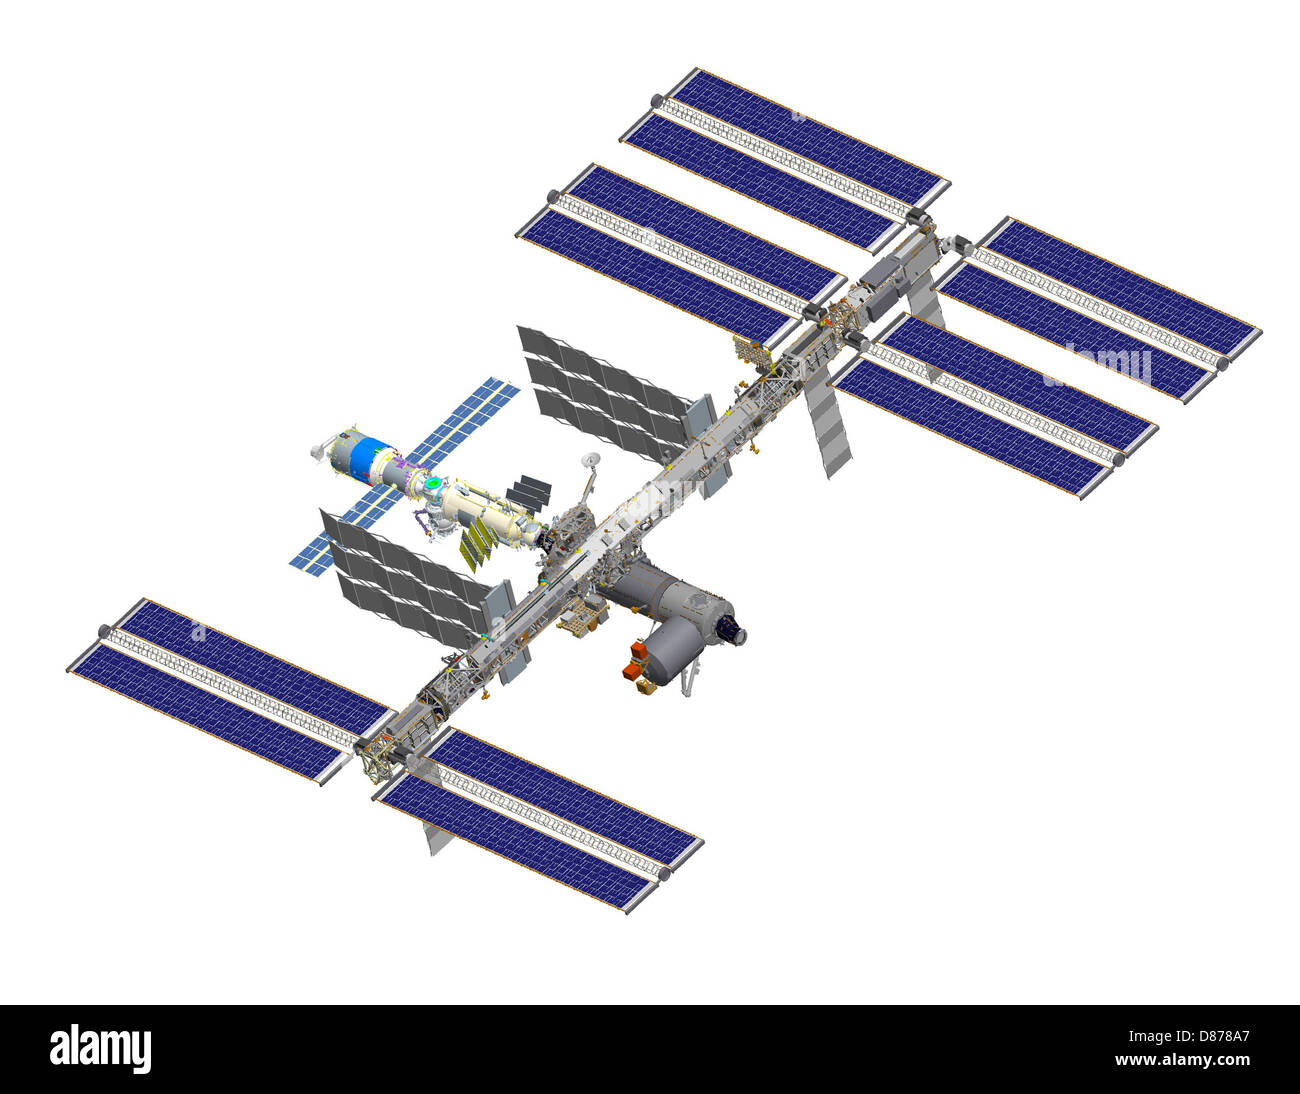 ISS after STS-122 (computer rendering of August 2006).jpg - Stock Image